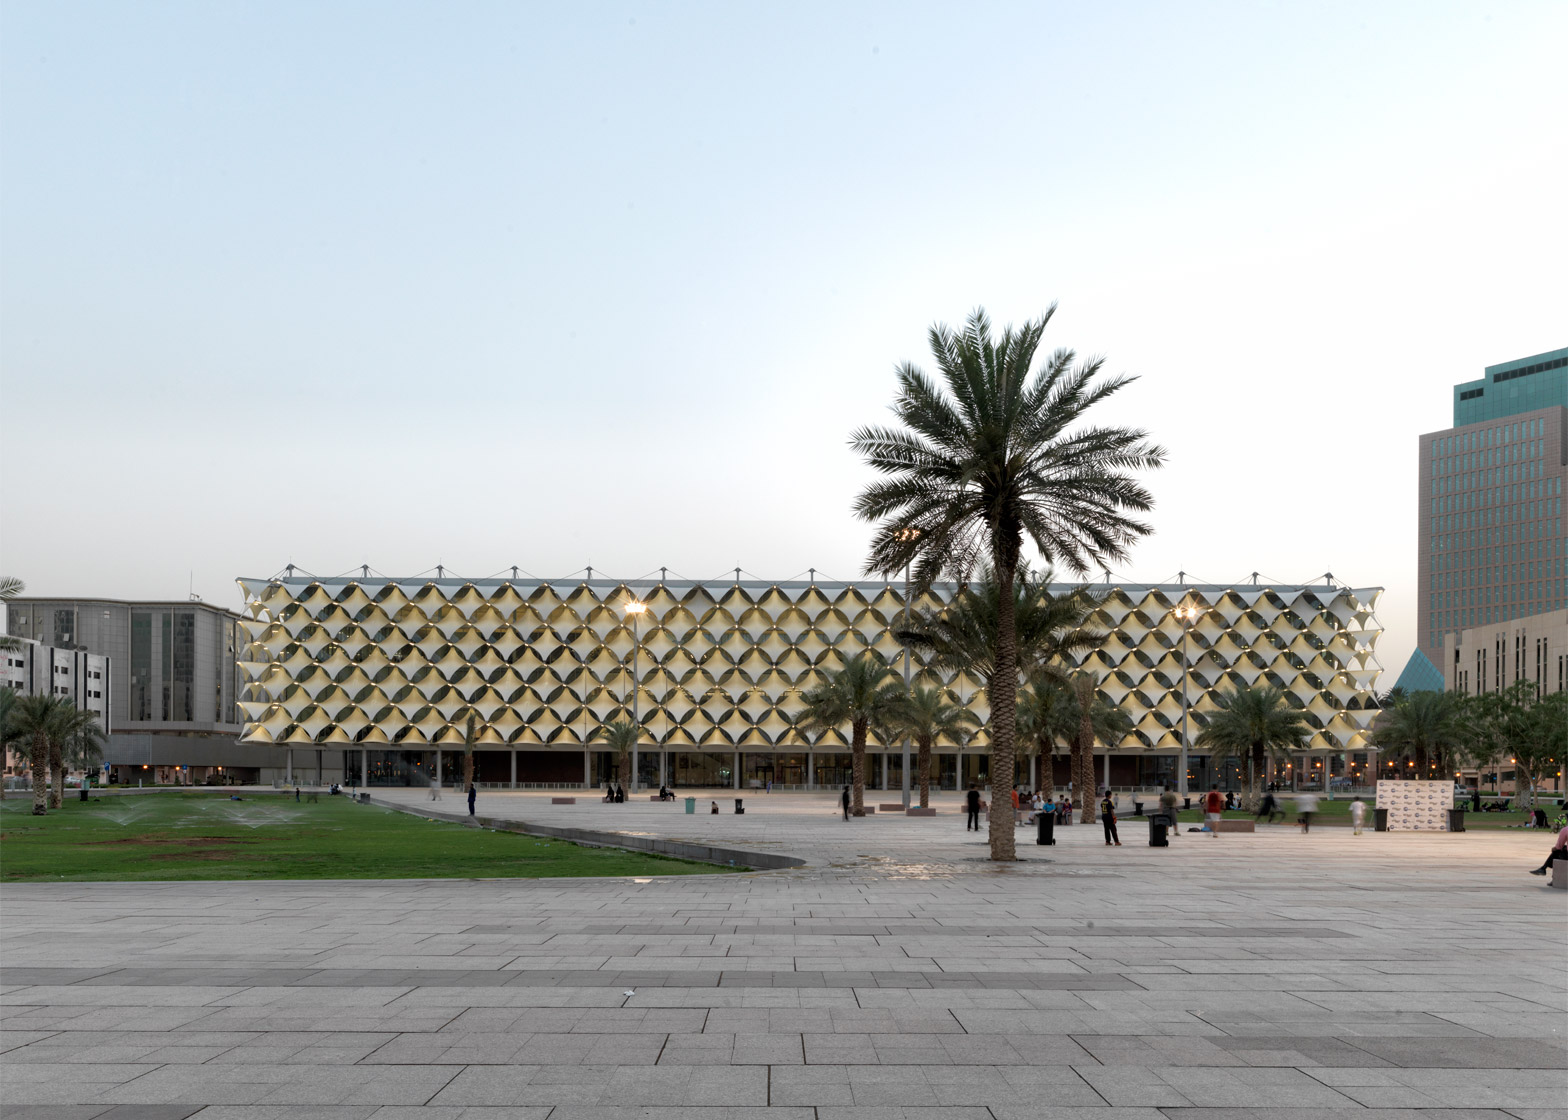 King Fahad National Library, Riyadh, Saudi Arabia; by Gerber Architekten International